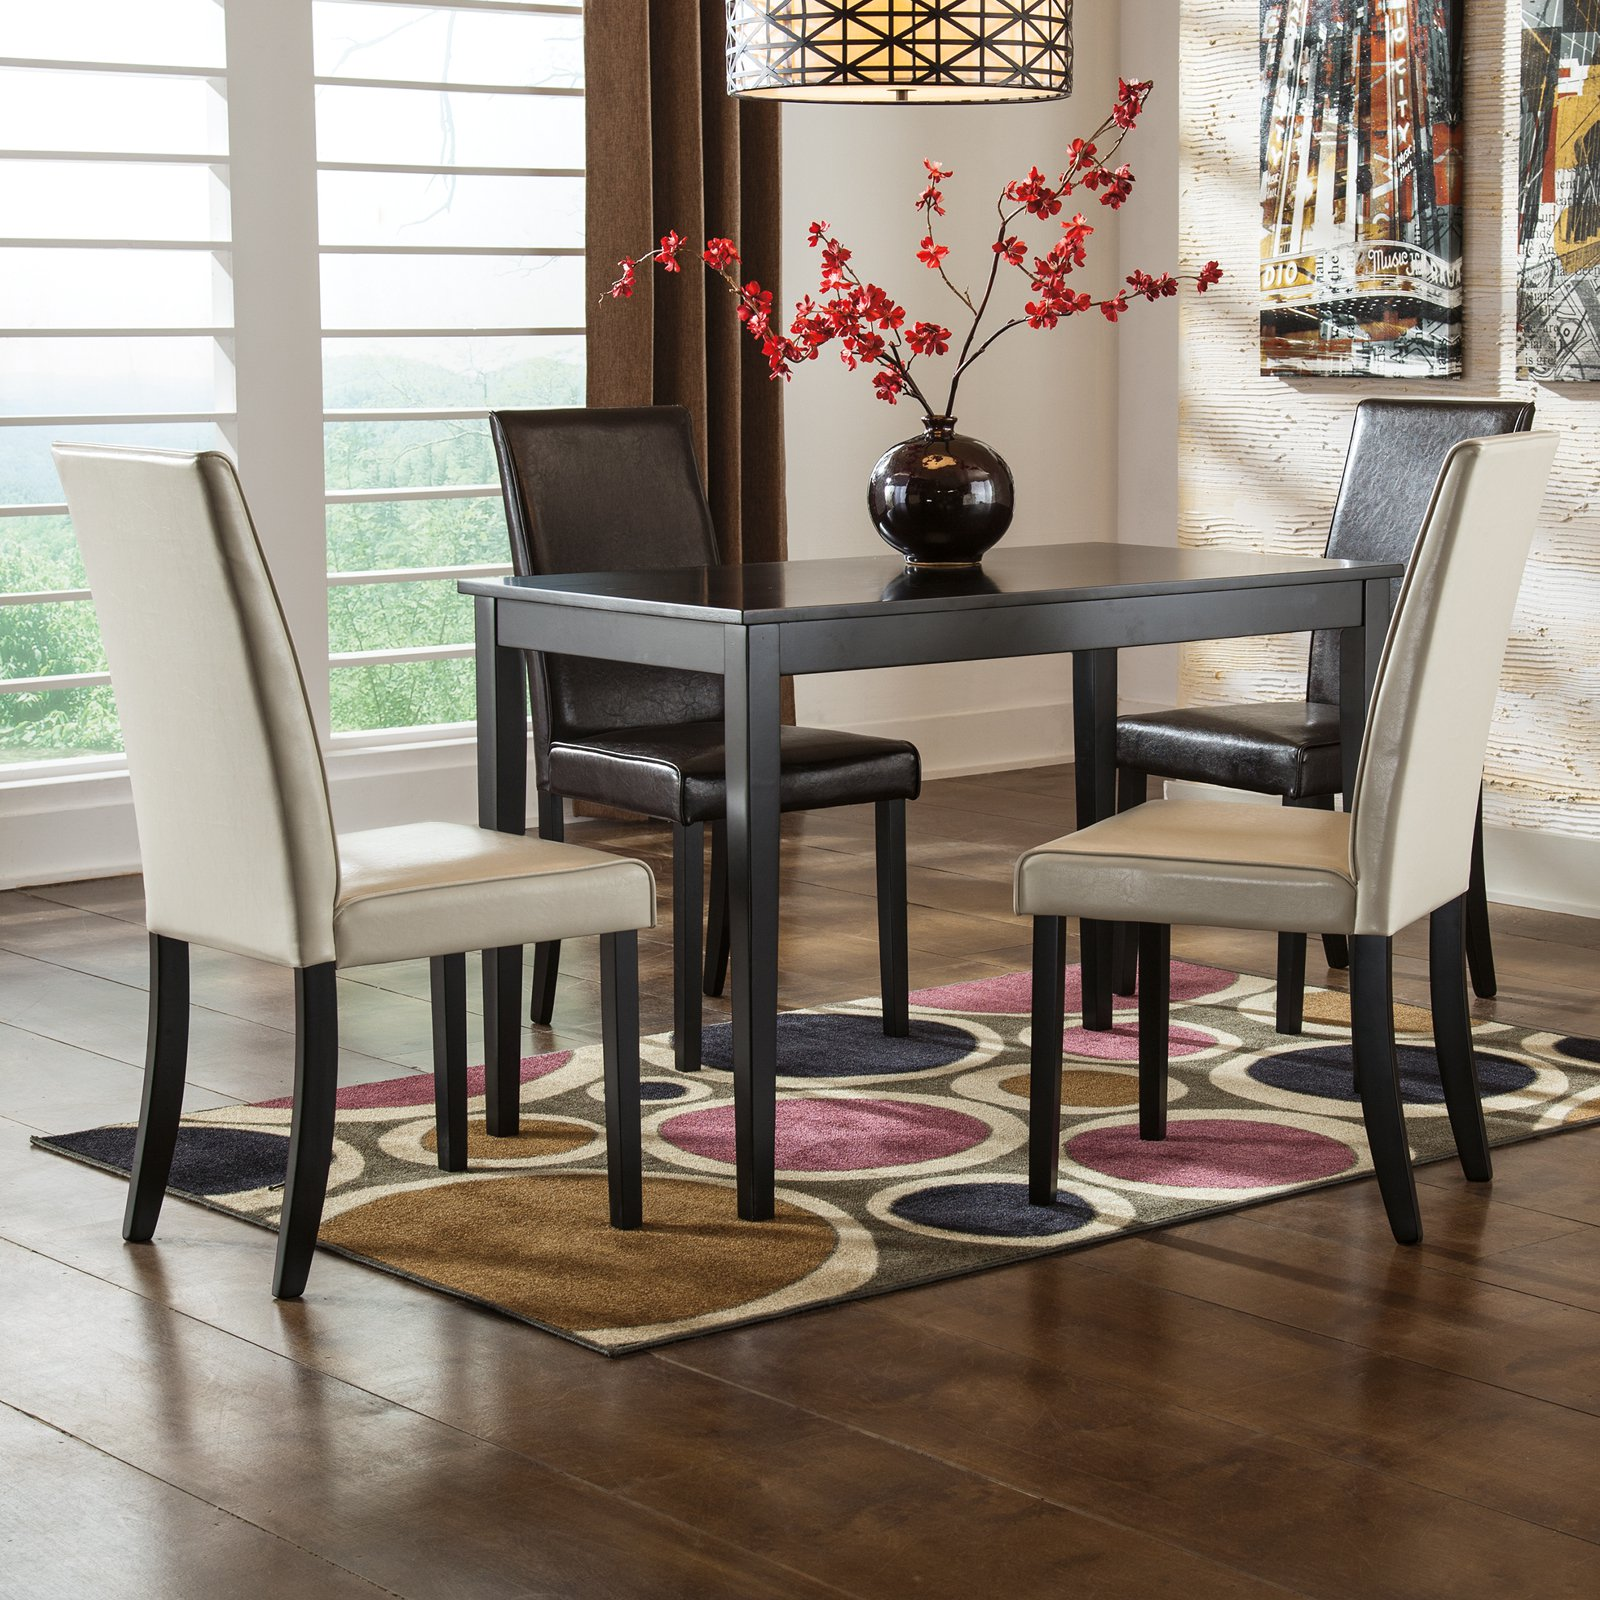 Signature Design by Ashley Kimonte Upholstered Dining